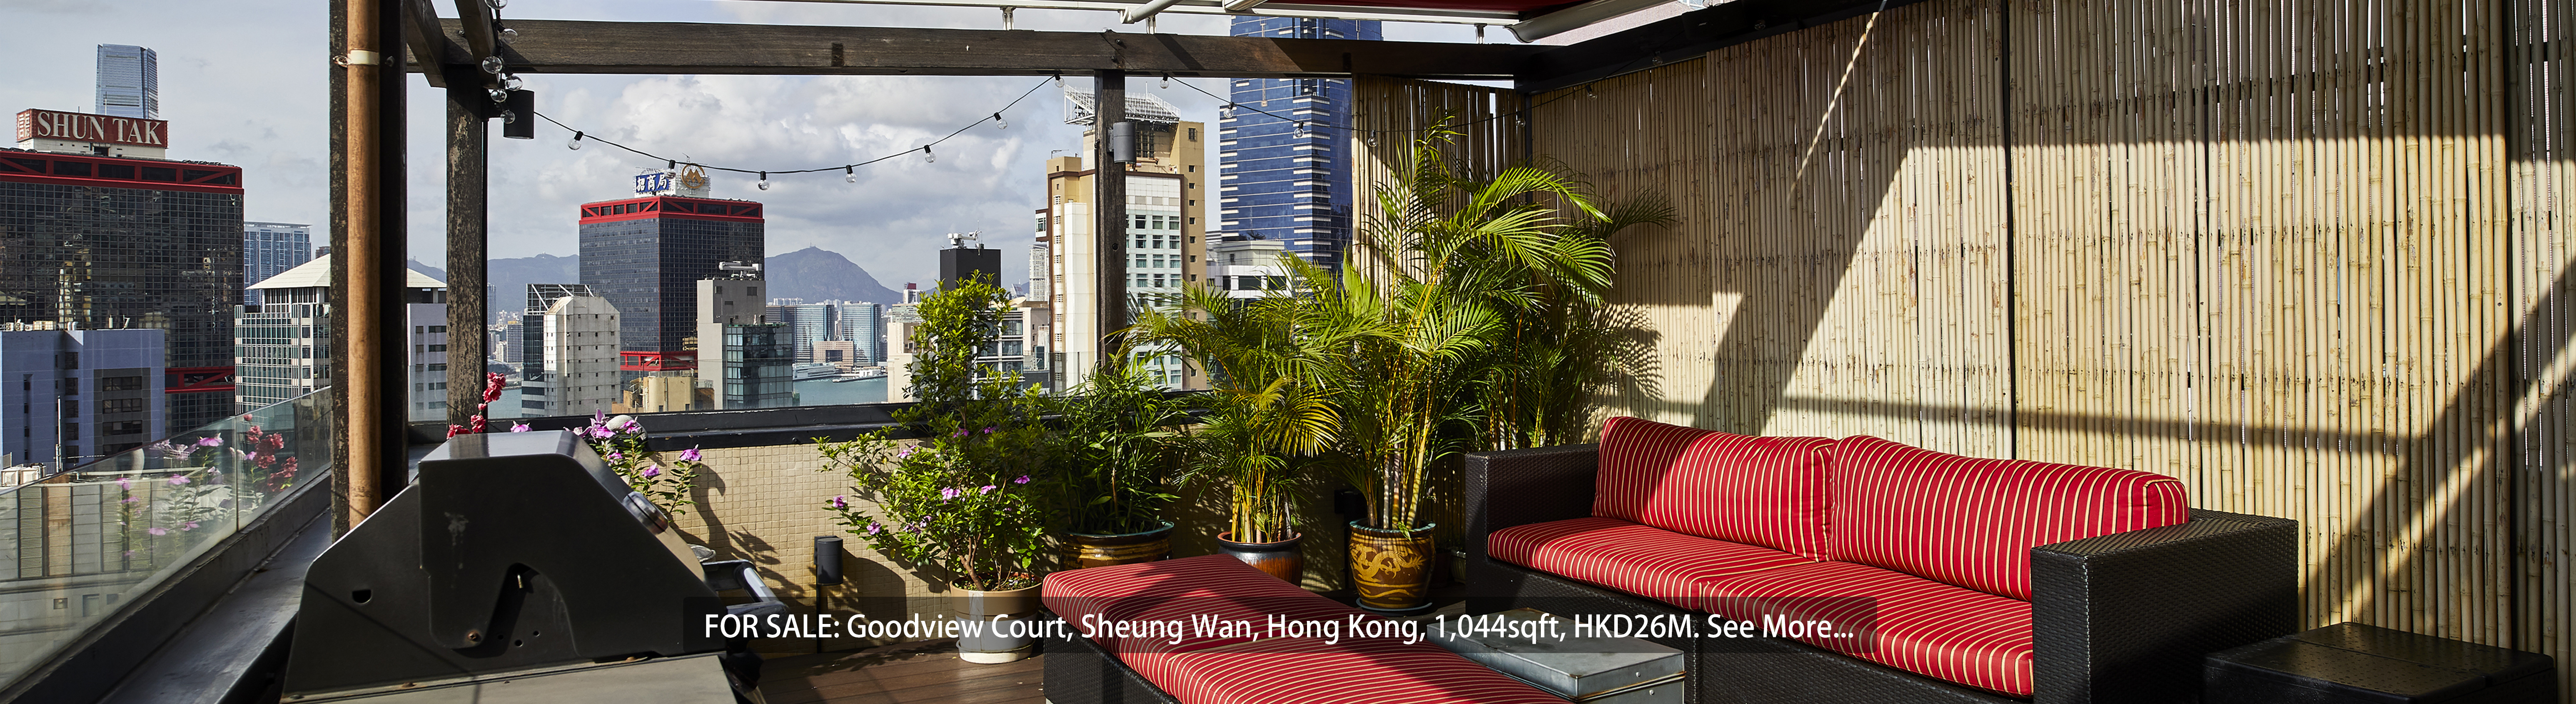 Hong Kong - Goodview Court